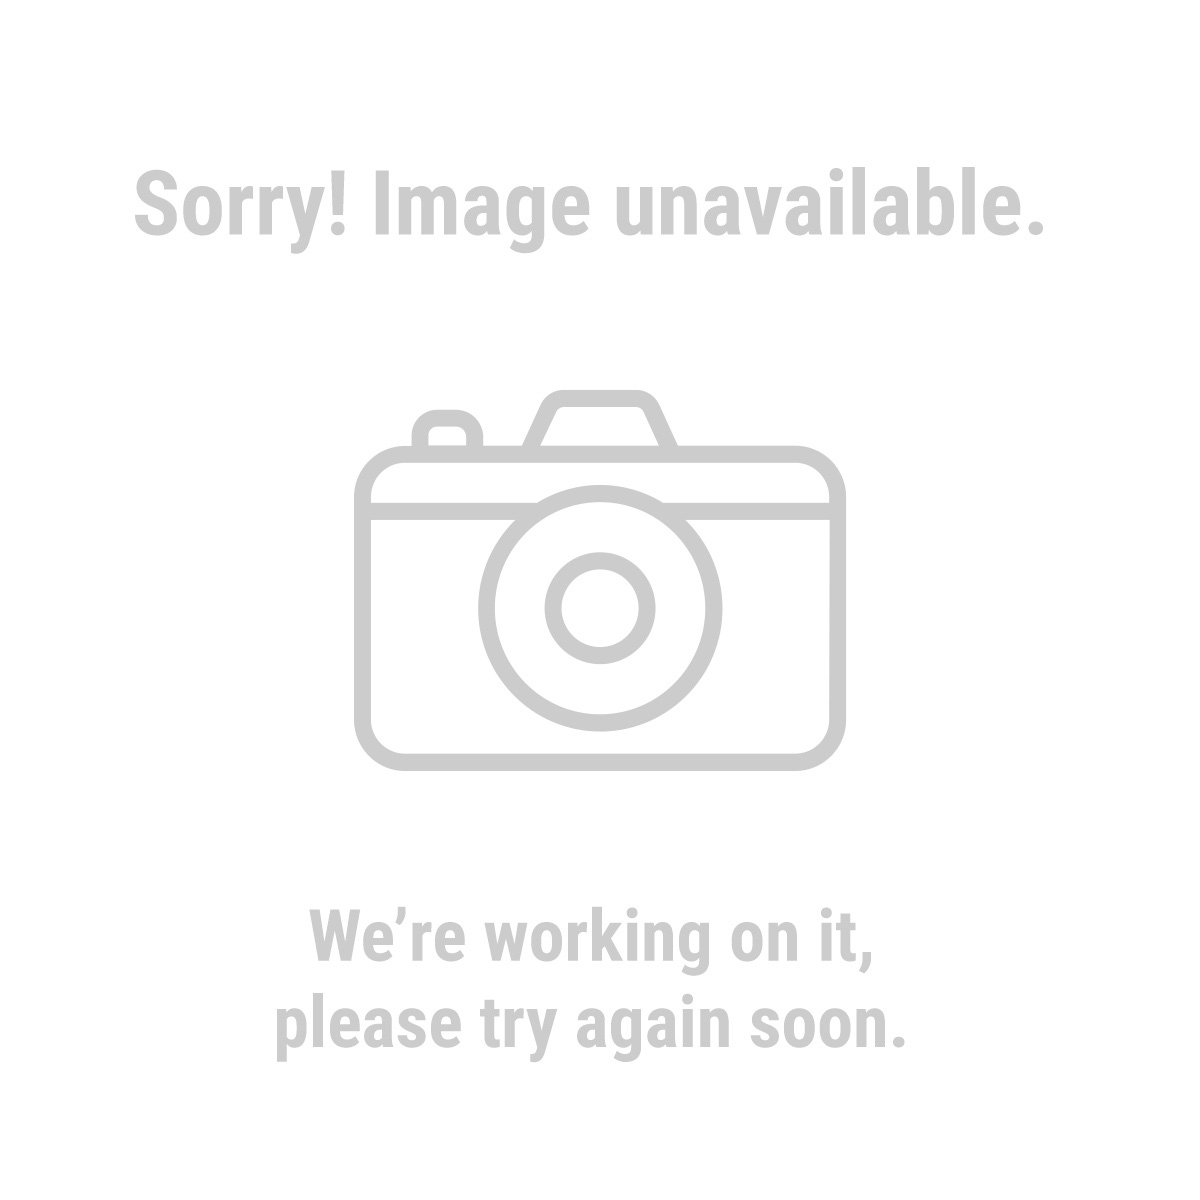 Used Small Cement Mixers : Portable electric cement mixer cubic ft